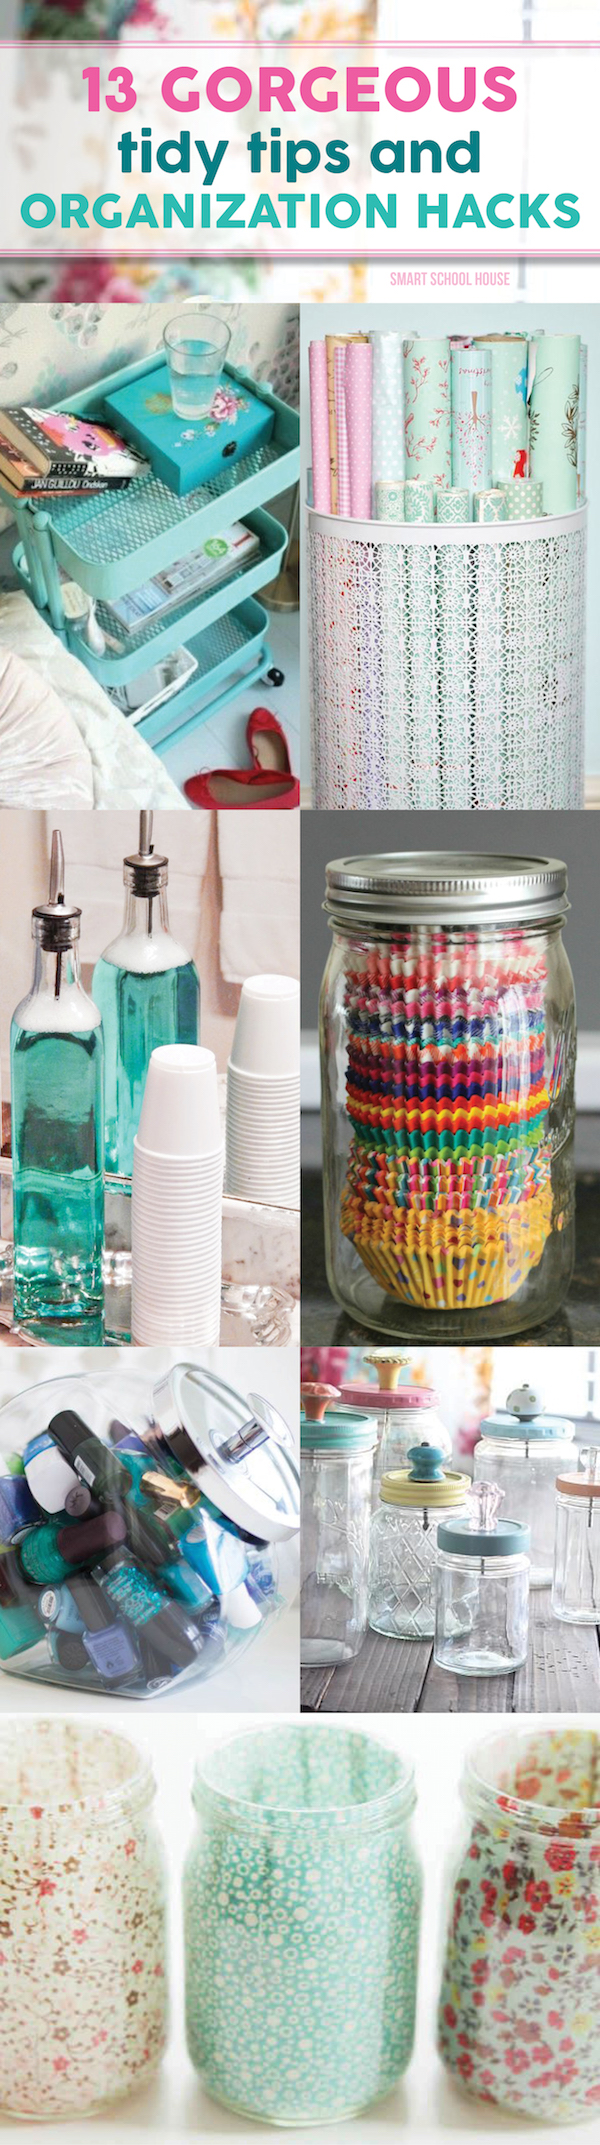 Tidy Tips and Organization Hacks